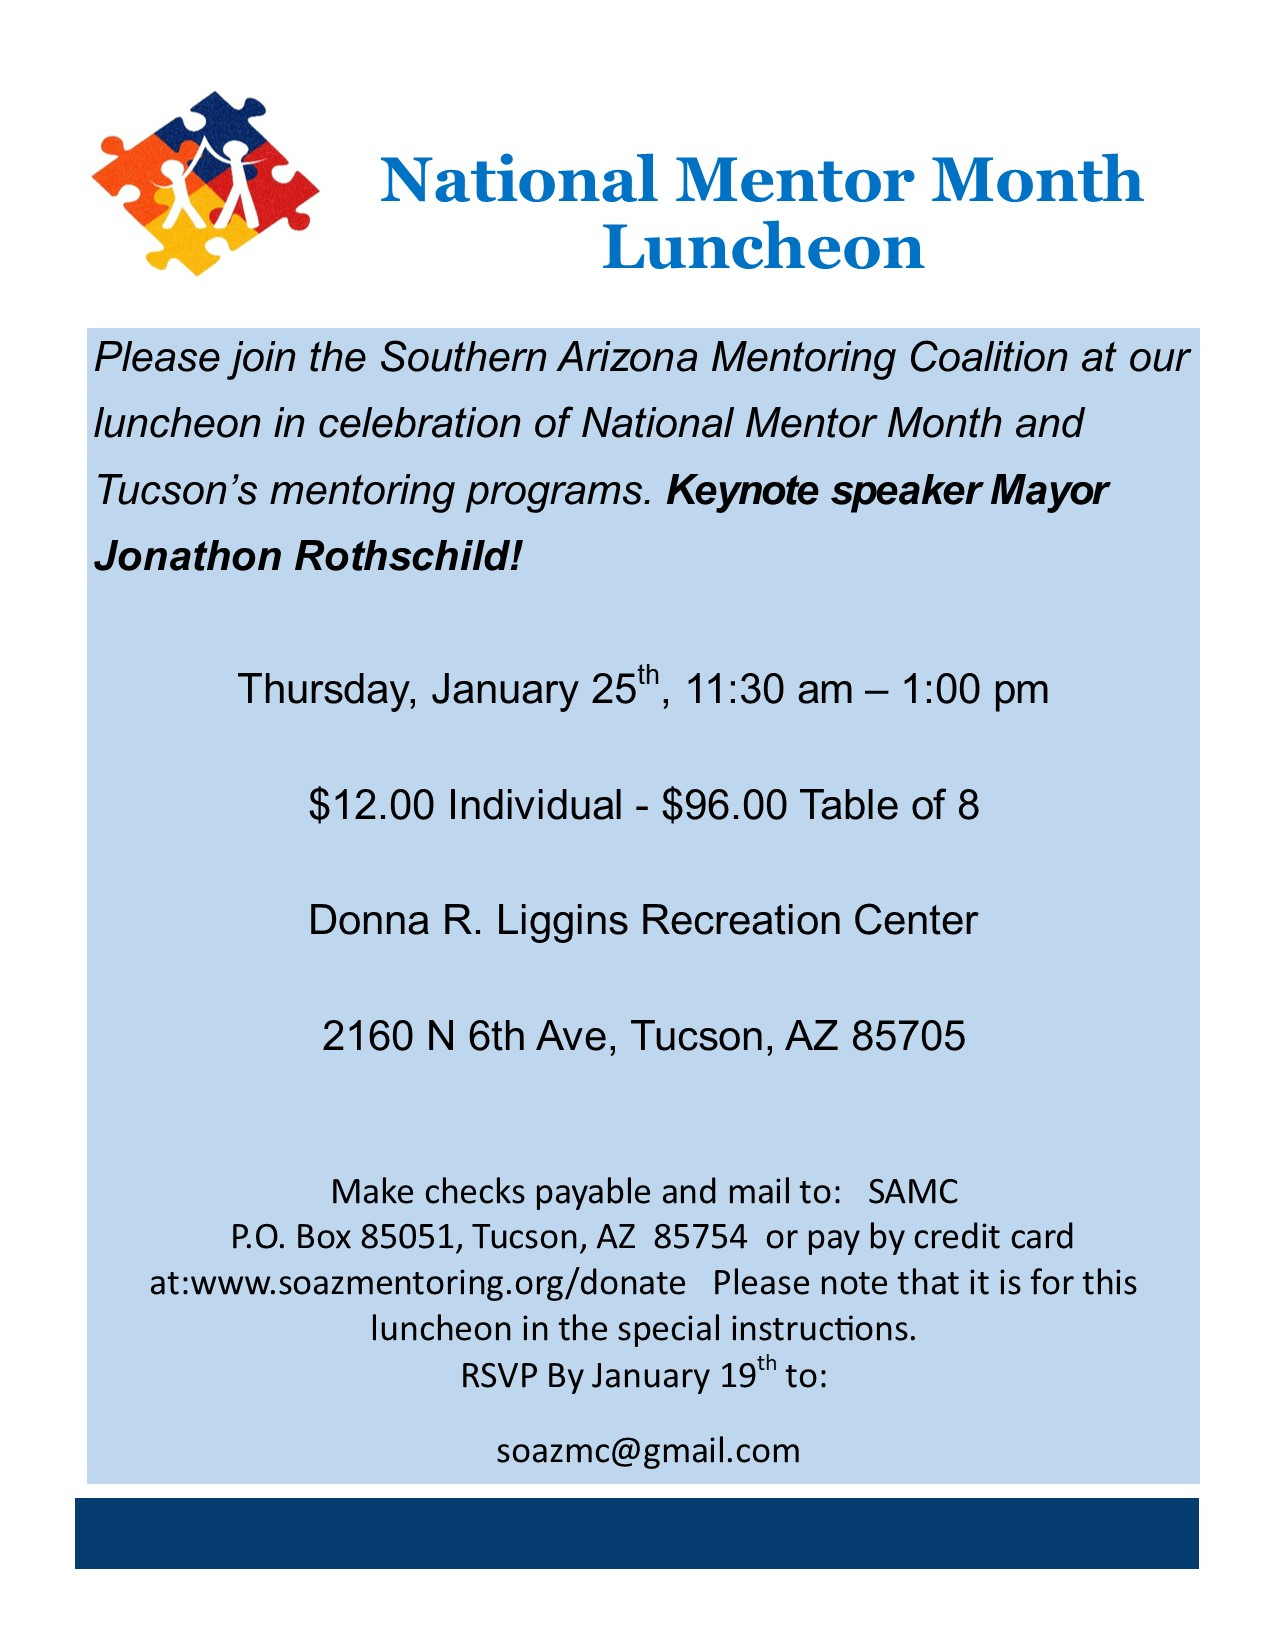 National Mentor Month Luncheon